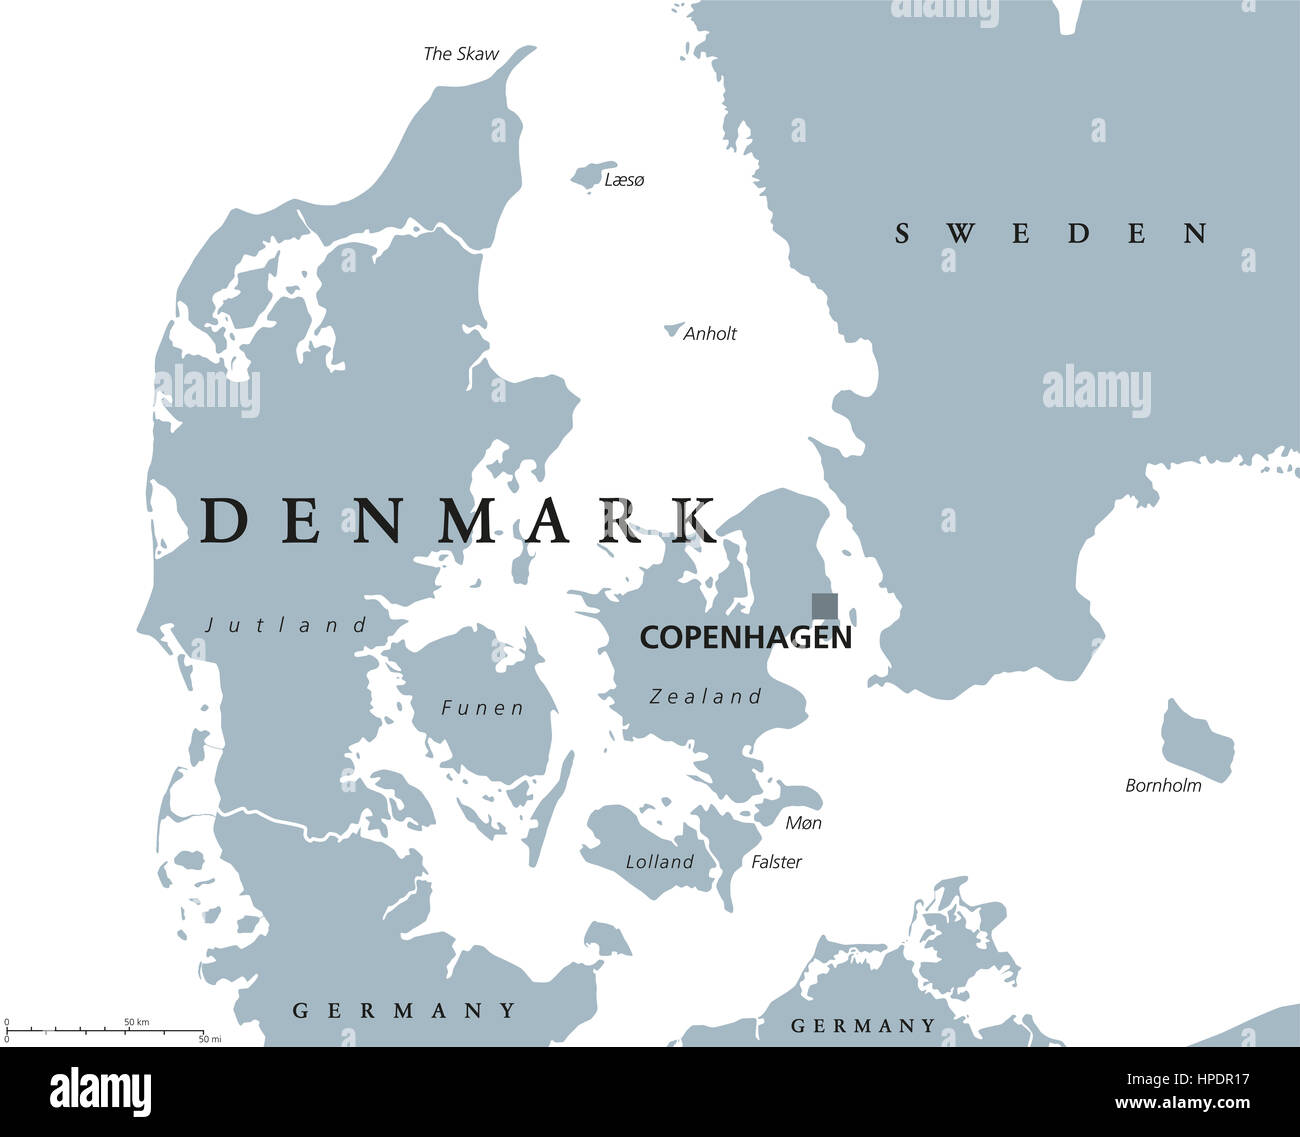 Denmark political map with capital copenhagen and neighbor denmark political map with capital copenhagen and neighbor countries kingdom scandinavian and nordic country in europe gumiabroncs Images